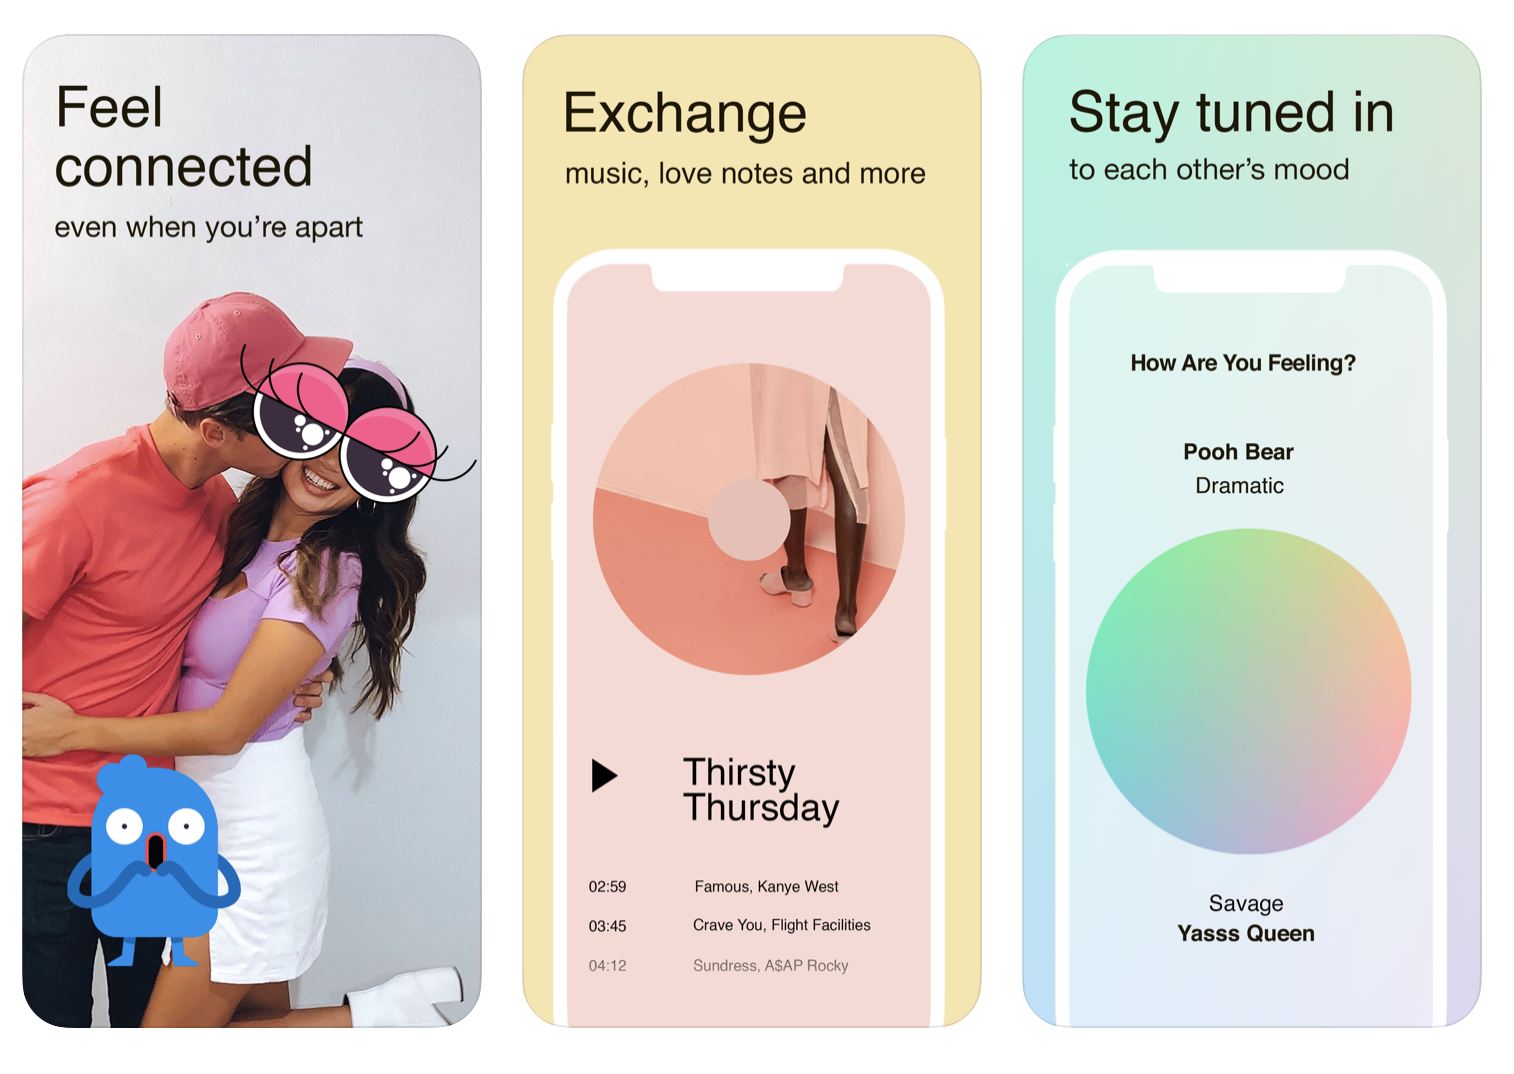 Facebook Launches Tuned, a New Shared Space App for Couples